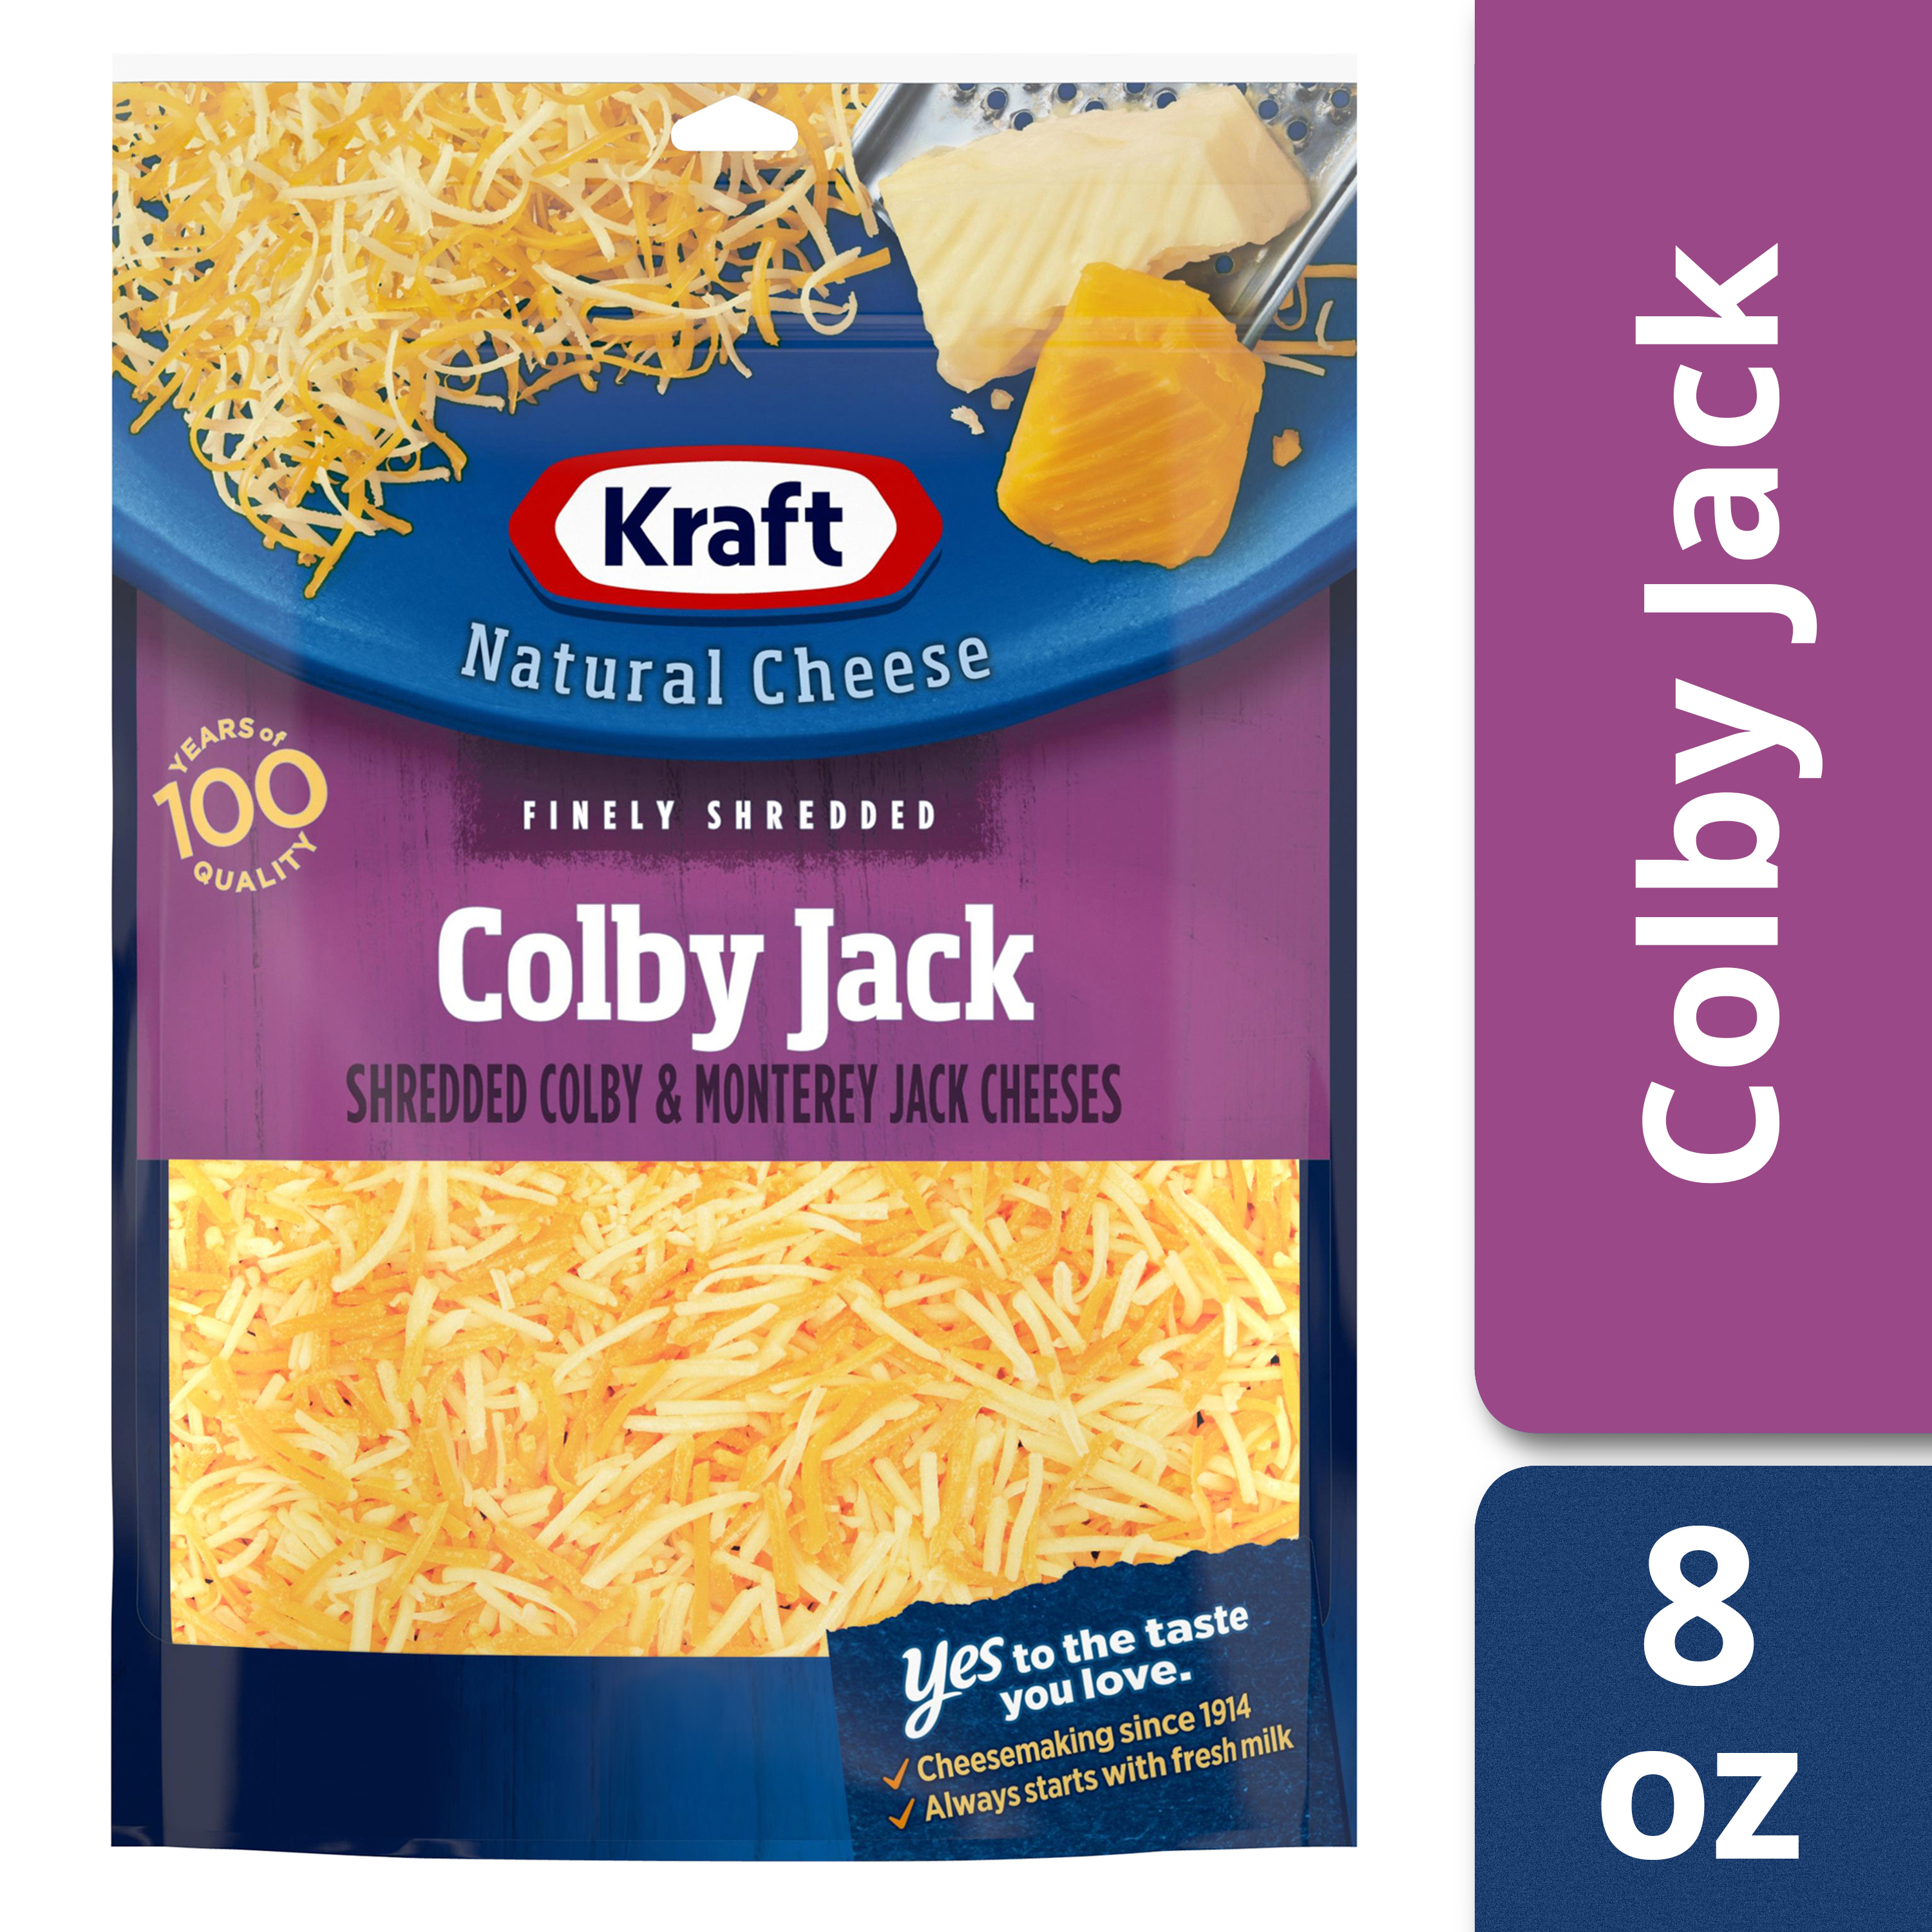 Kraft Colby Jack Finely Shredded Natural Cheese 8 oz Pouch